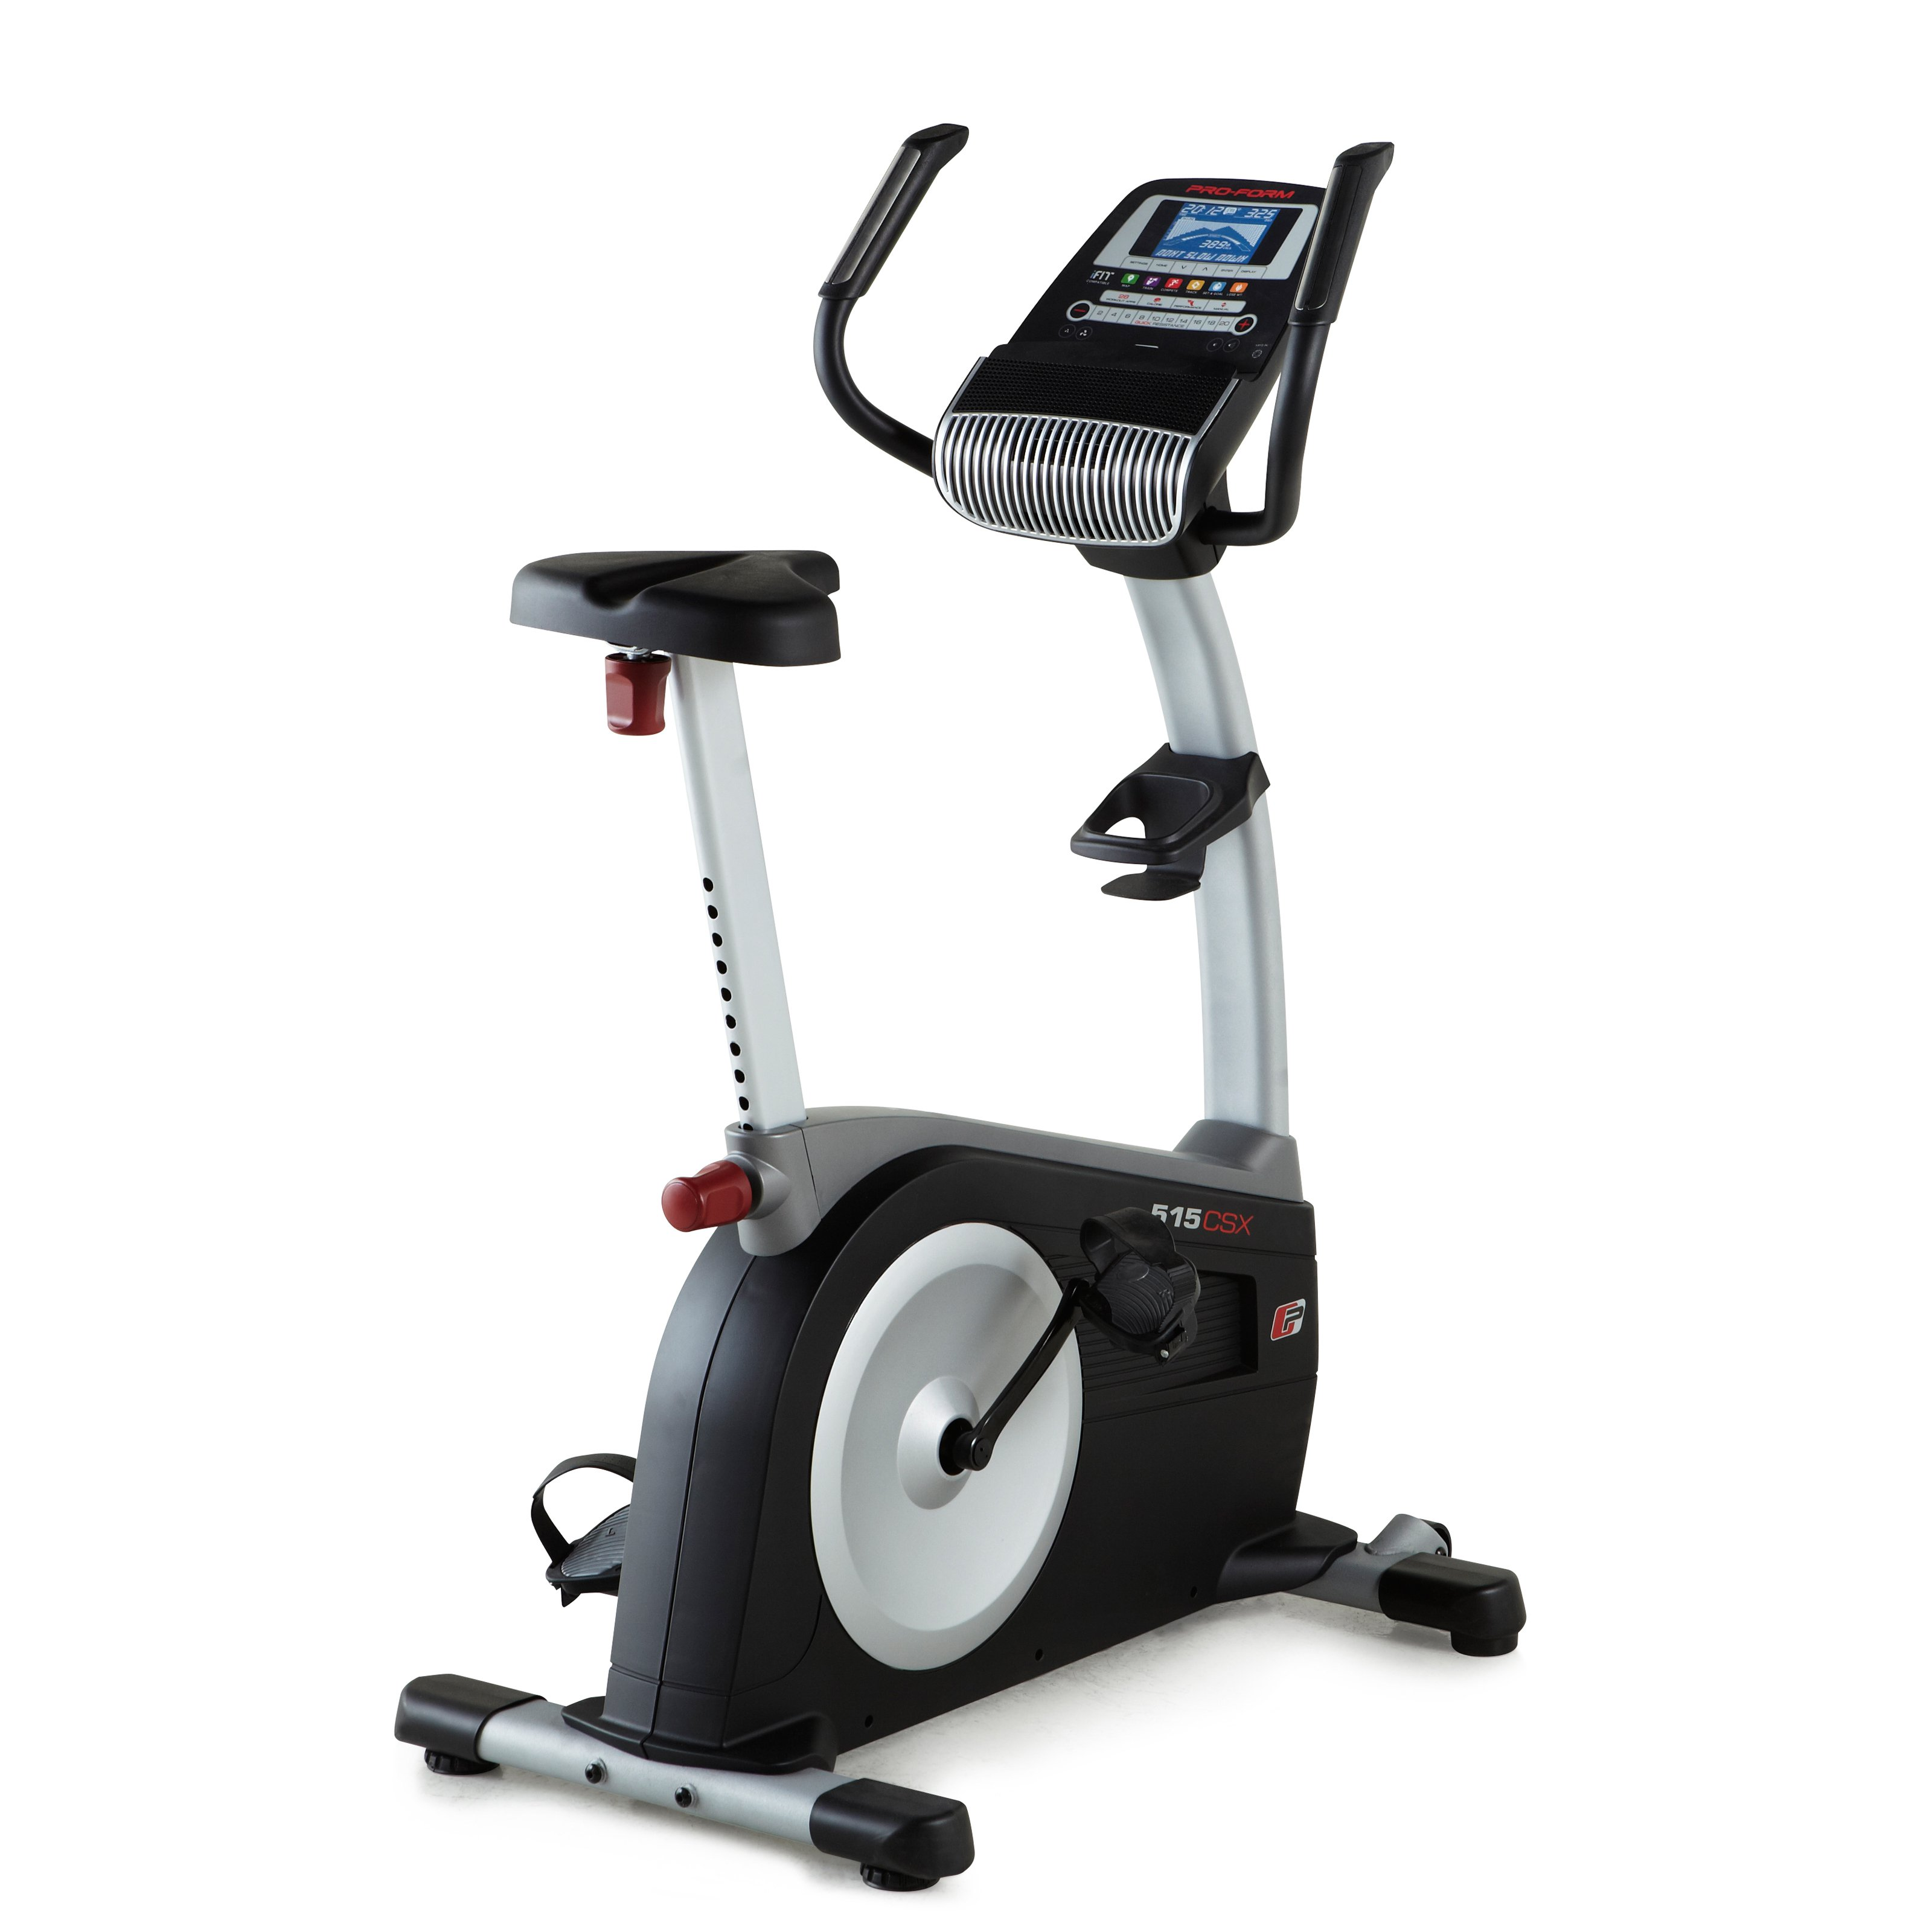 PFEX83814 515 CSX iFit Compatible Upright Bike with 20 Digital Resistance Levels  CoolAire Workout Fan  Google Maps Routes  and Certified Personal Trainer Workout Programs